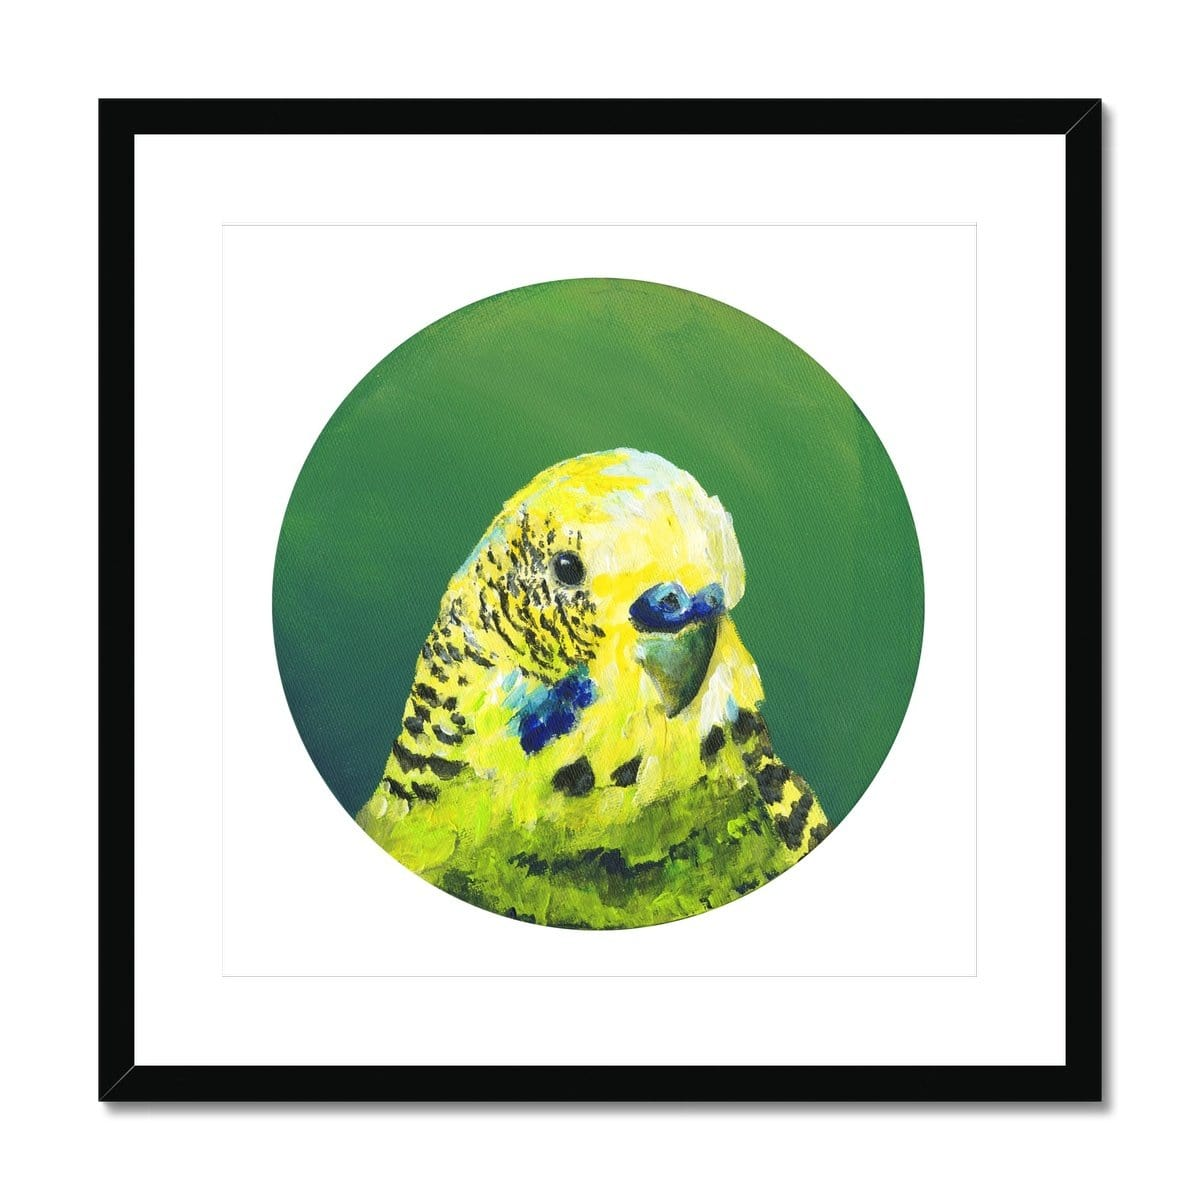 Green Budgie Framed & Mounted Print